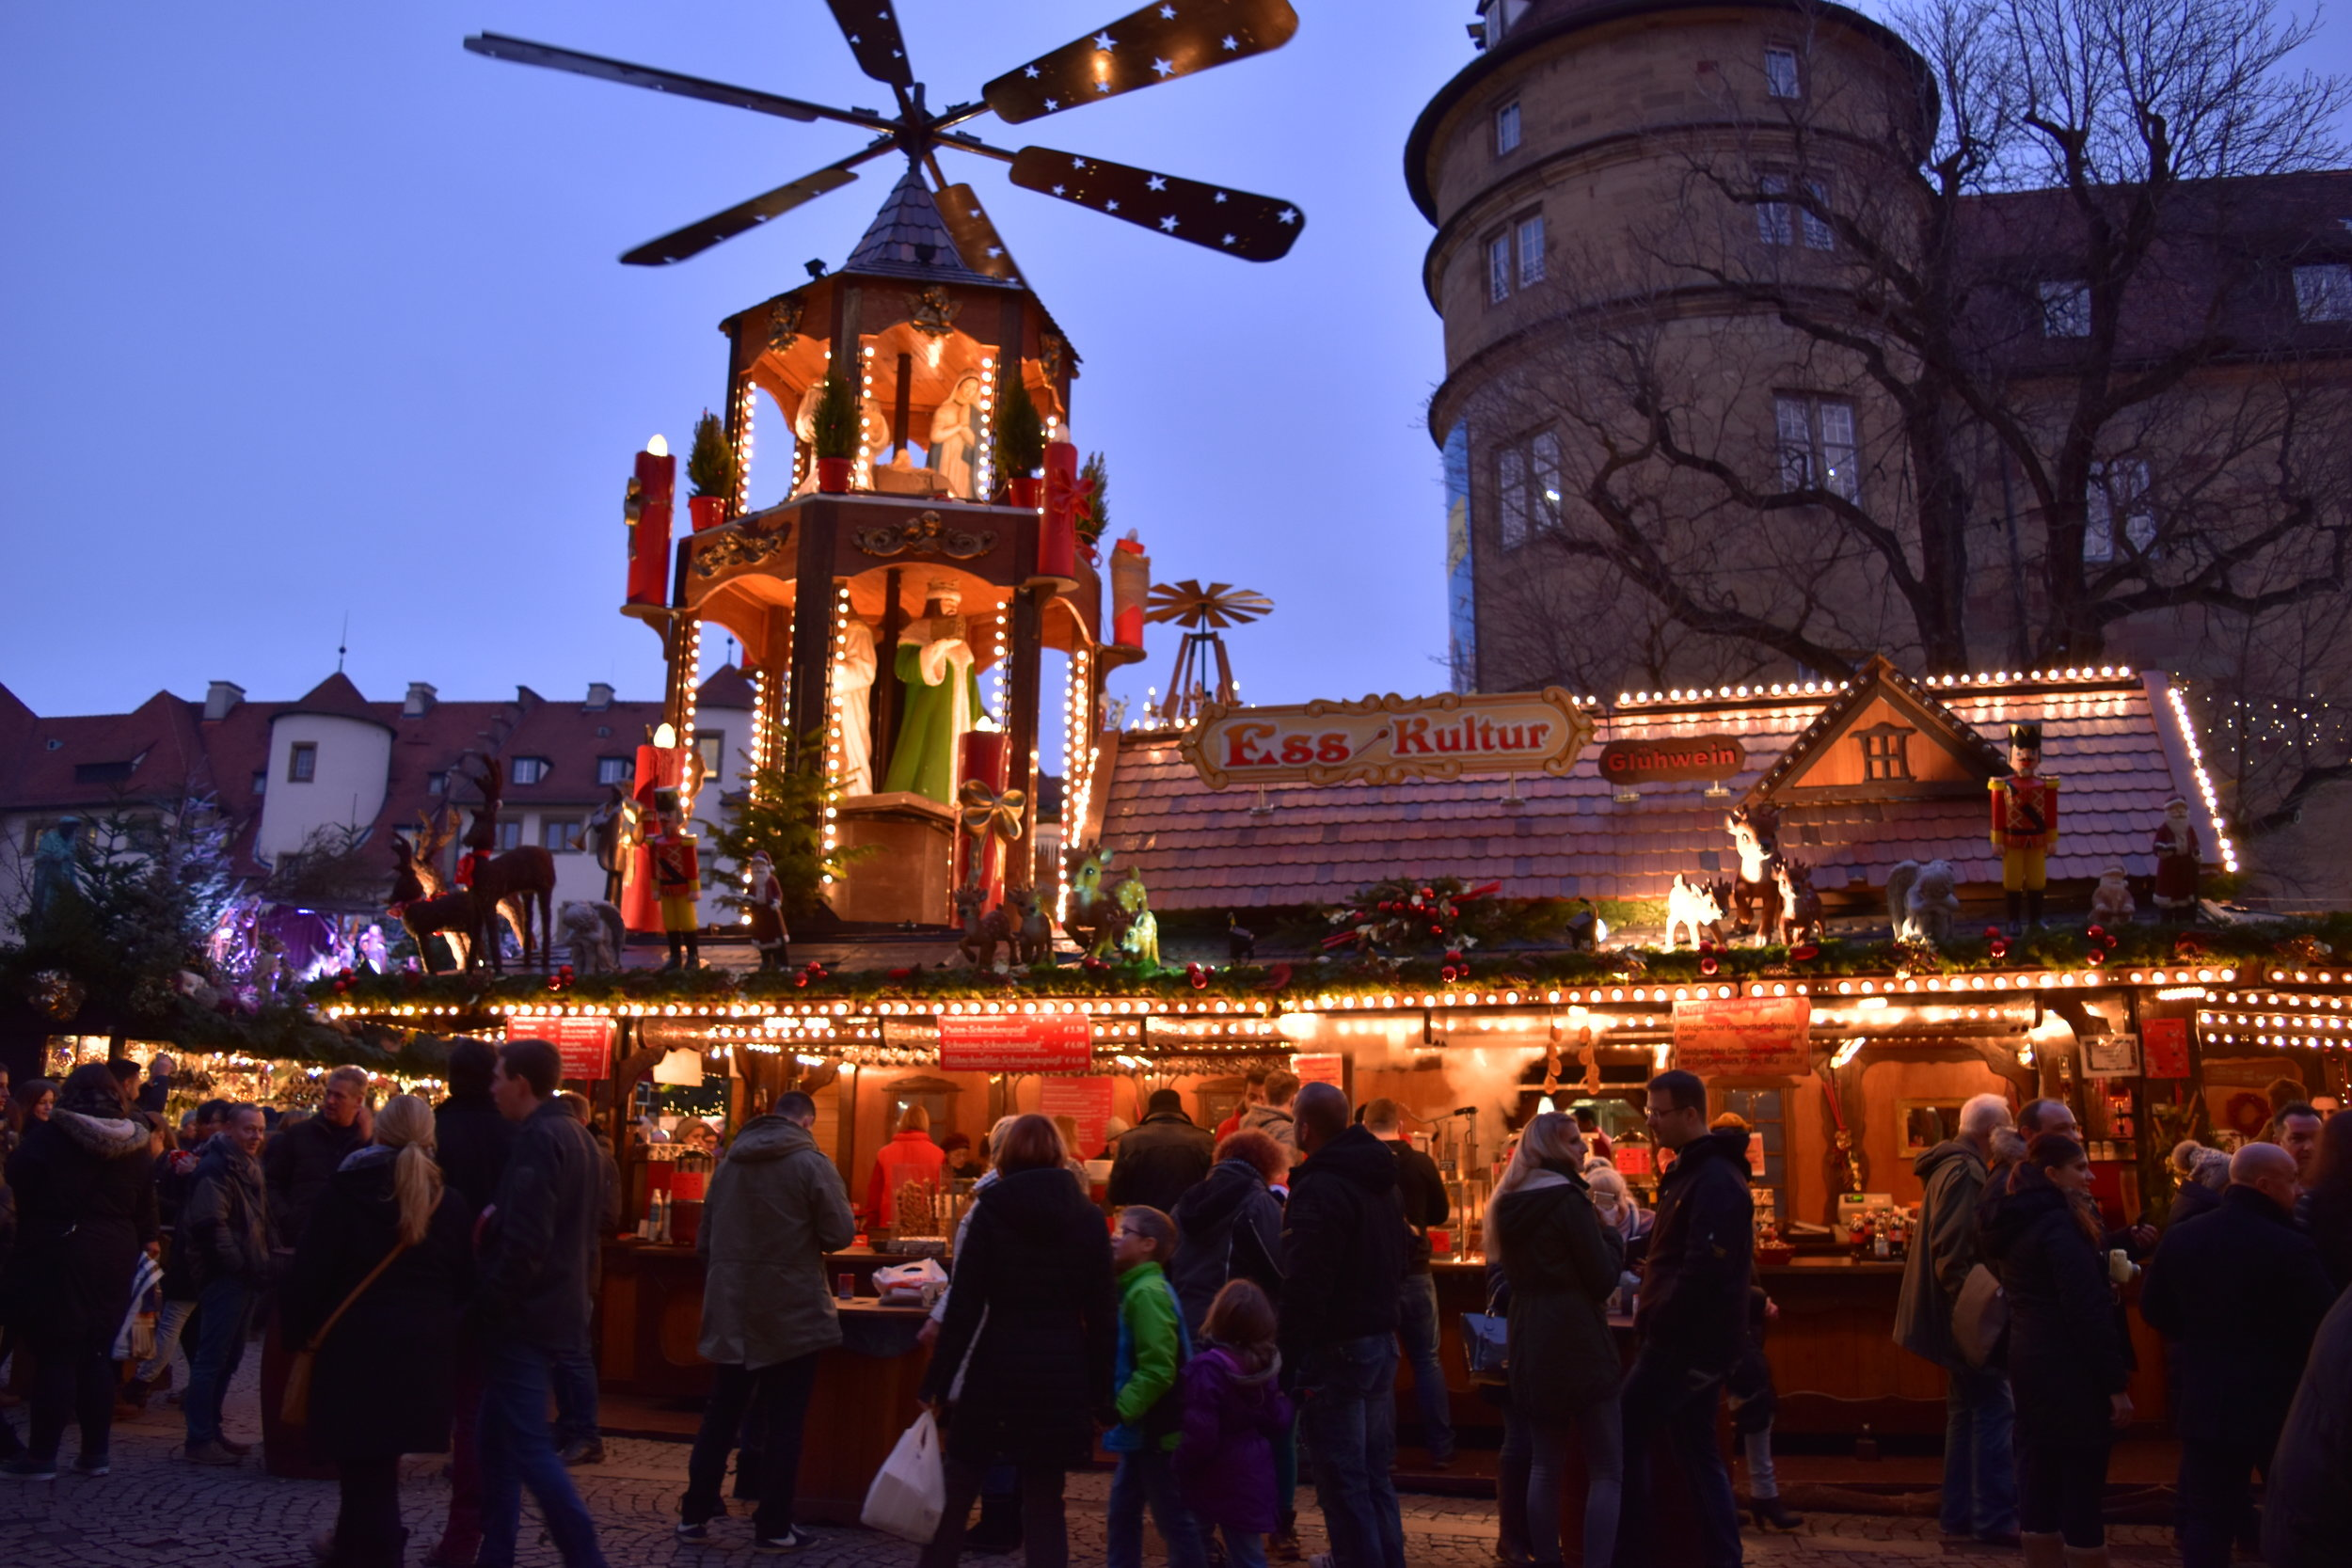 Christmas-themed booths light up the plaza at the Christmas Market in Stuttgart, Germany.